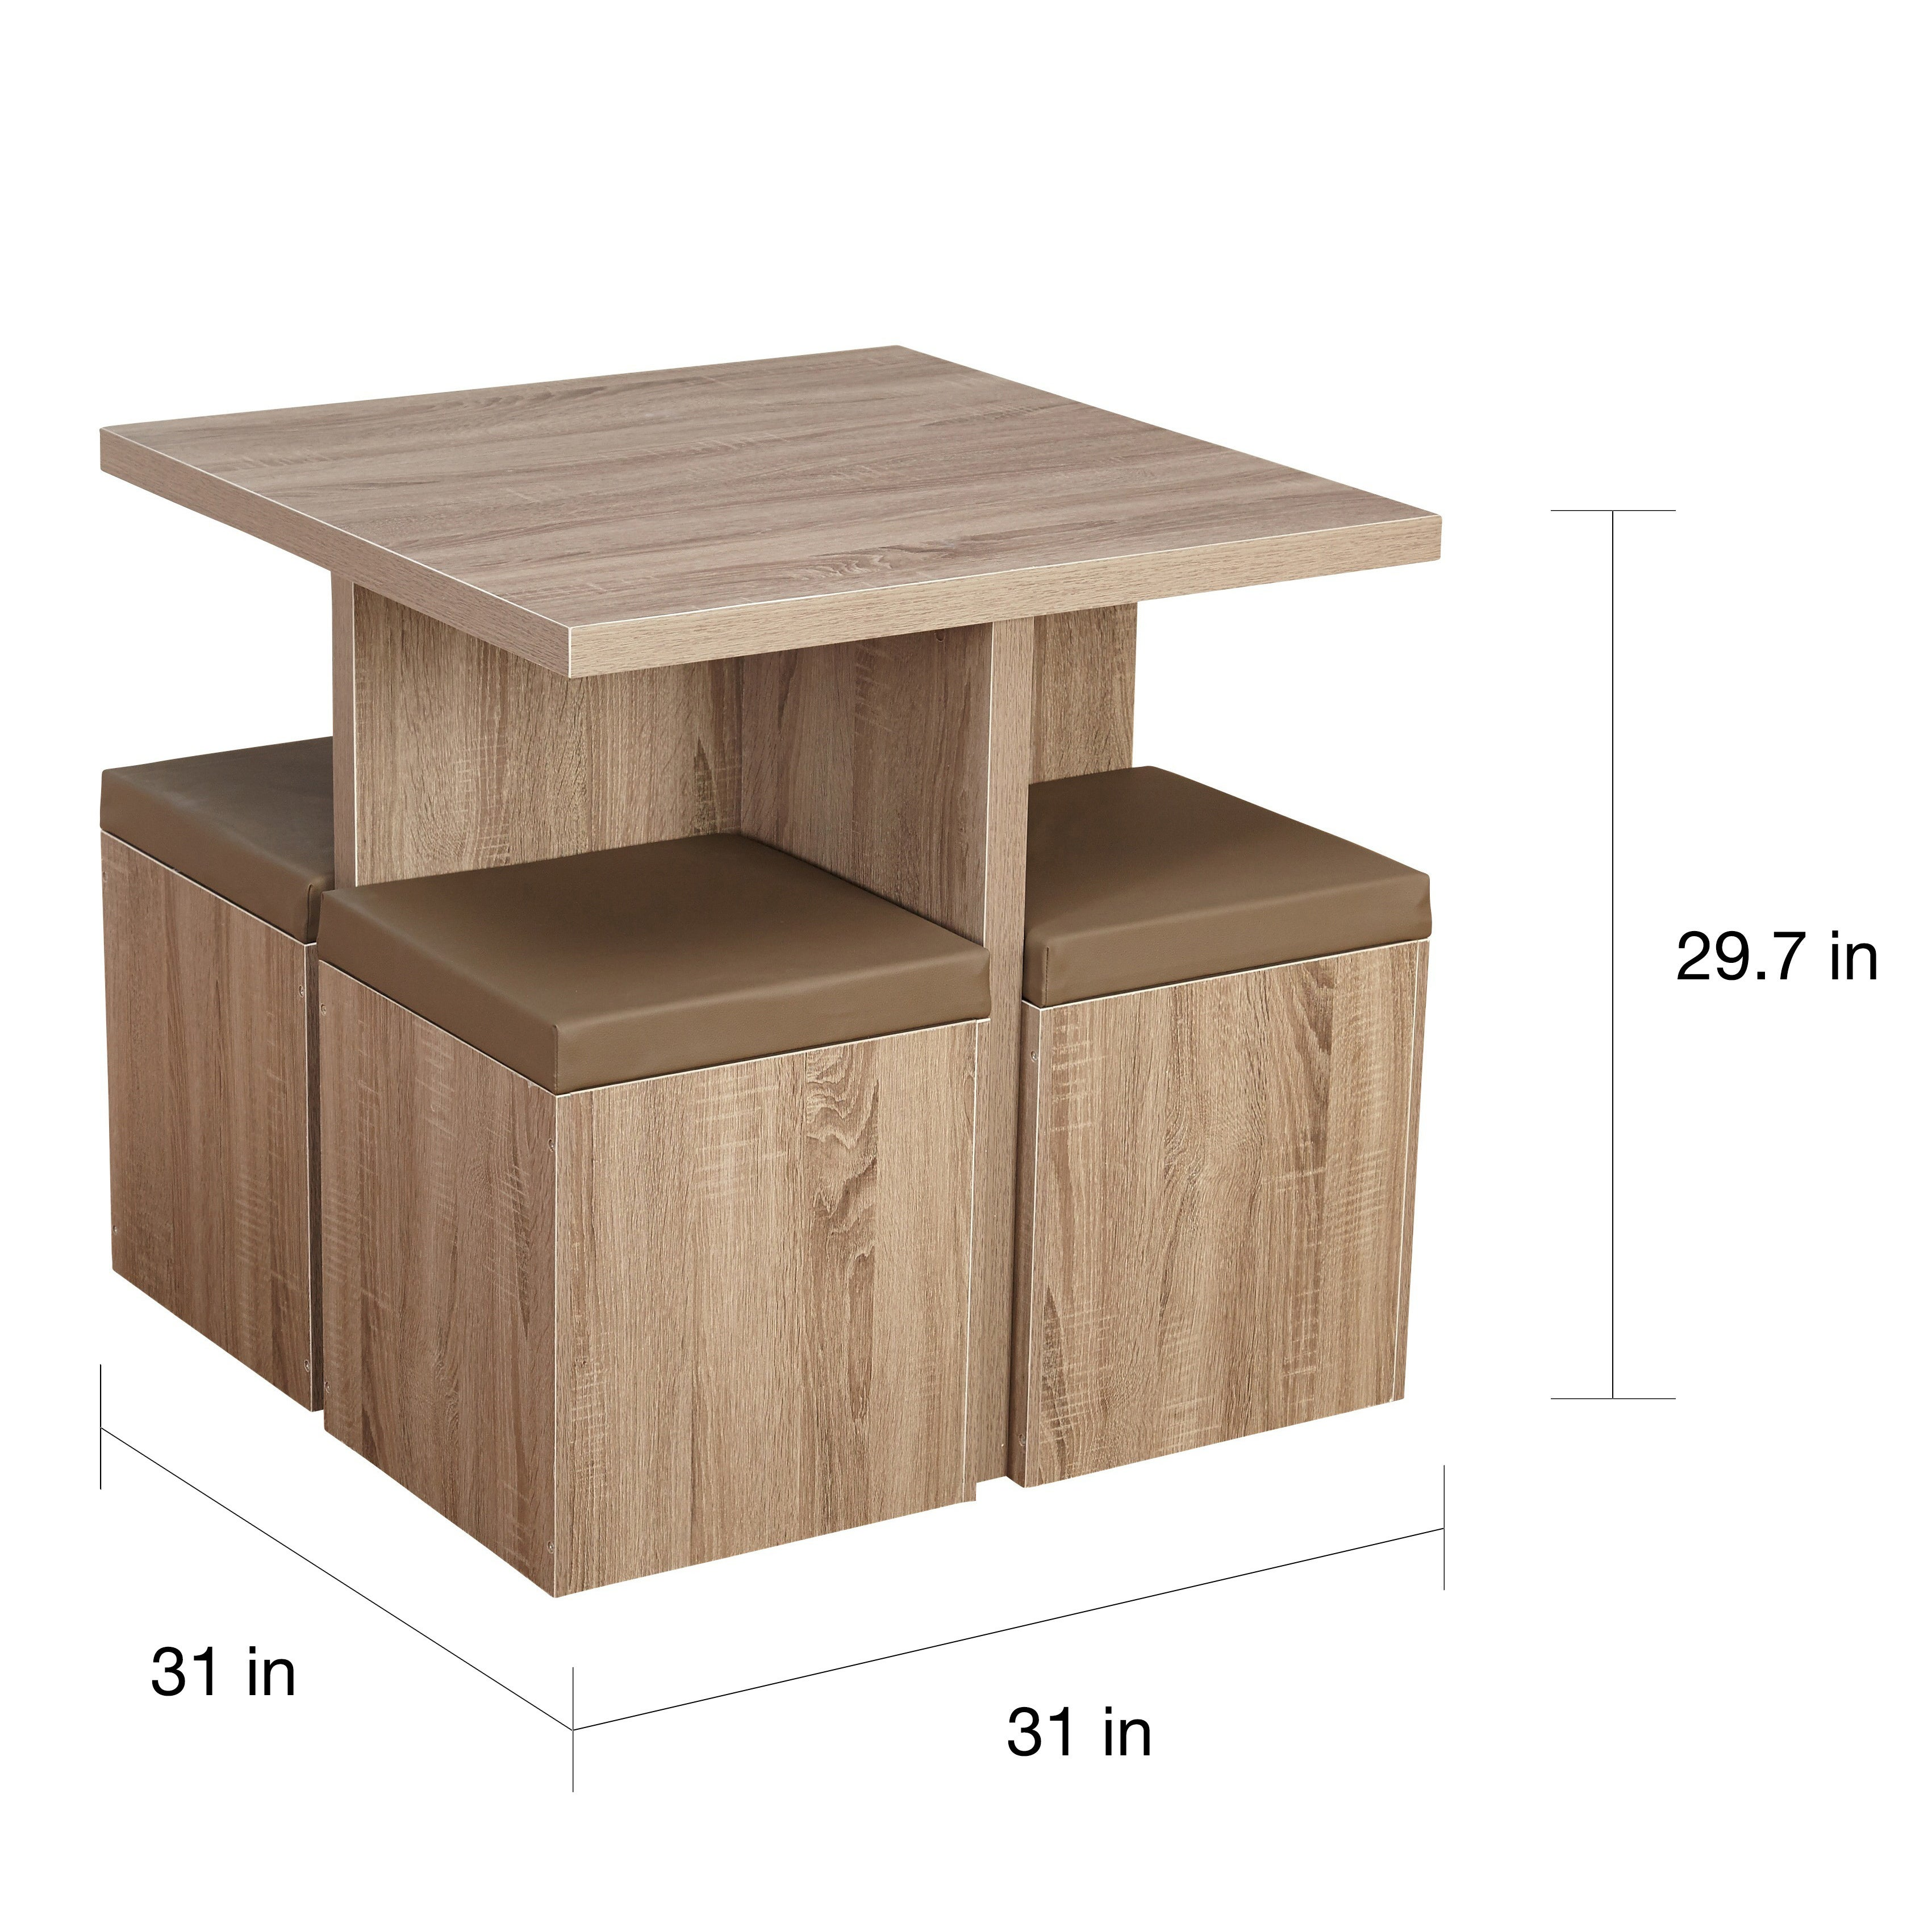 Simple Living 5 Piece Baxter Dining Set With Storage Ottomans Free Shipping Today 9570455